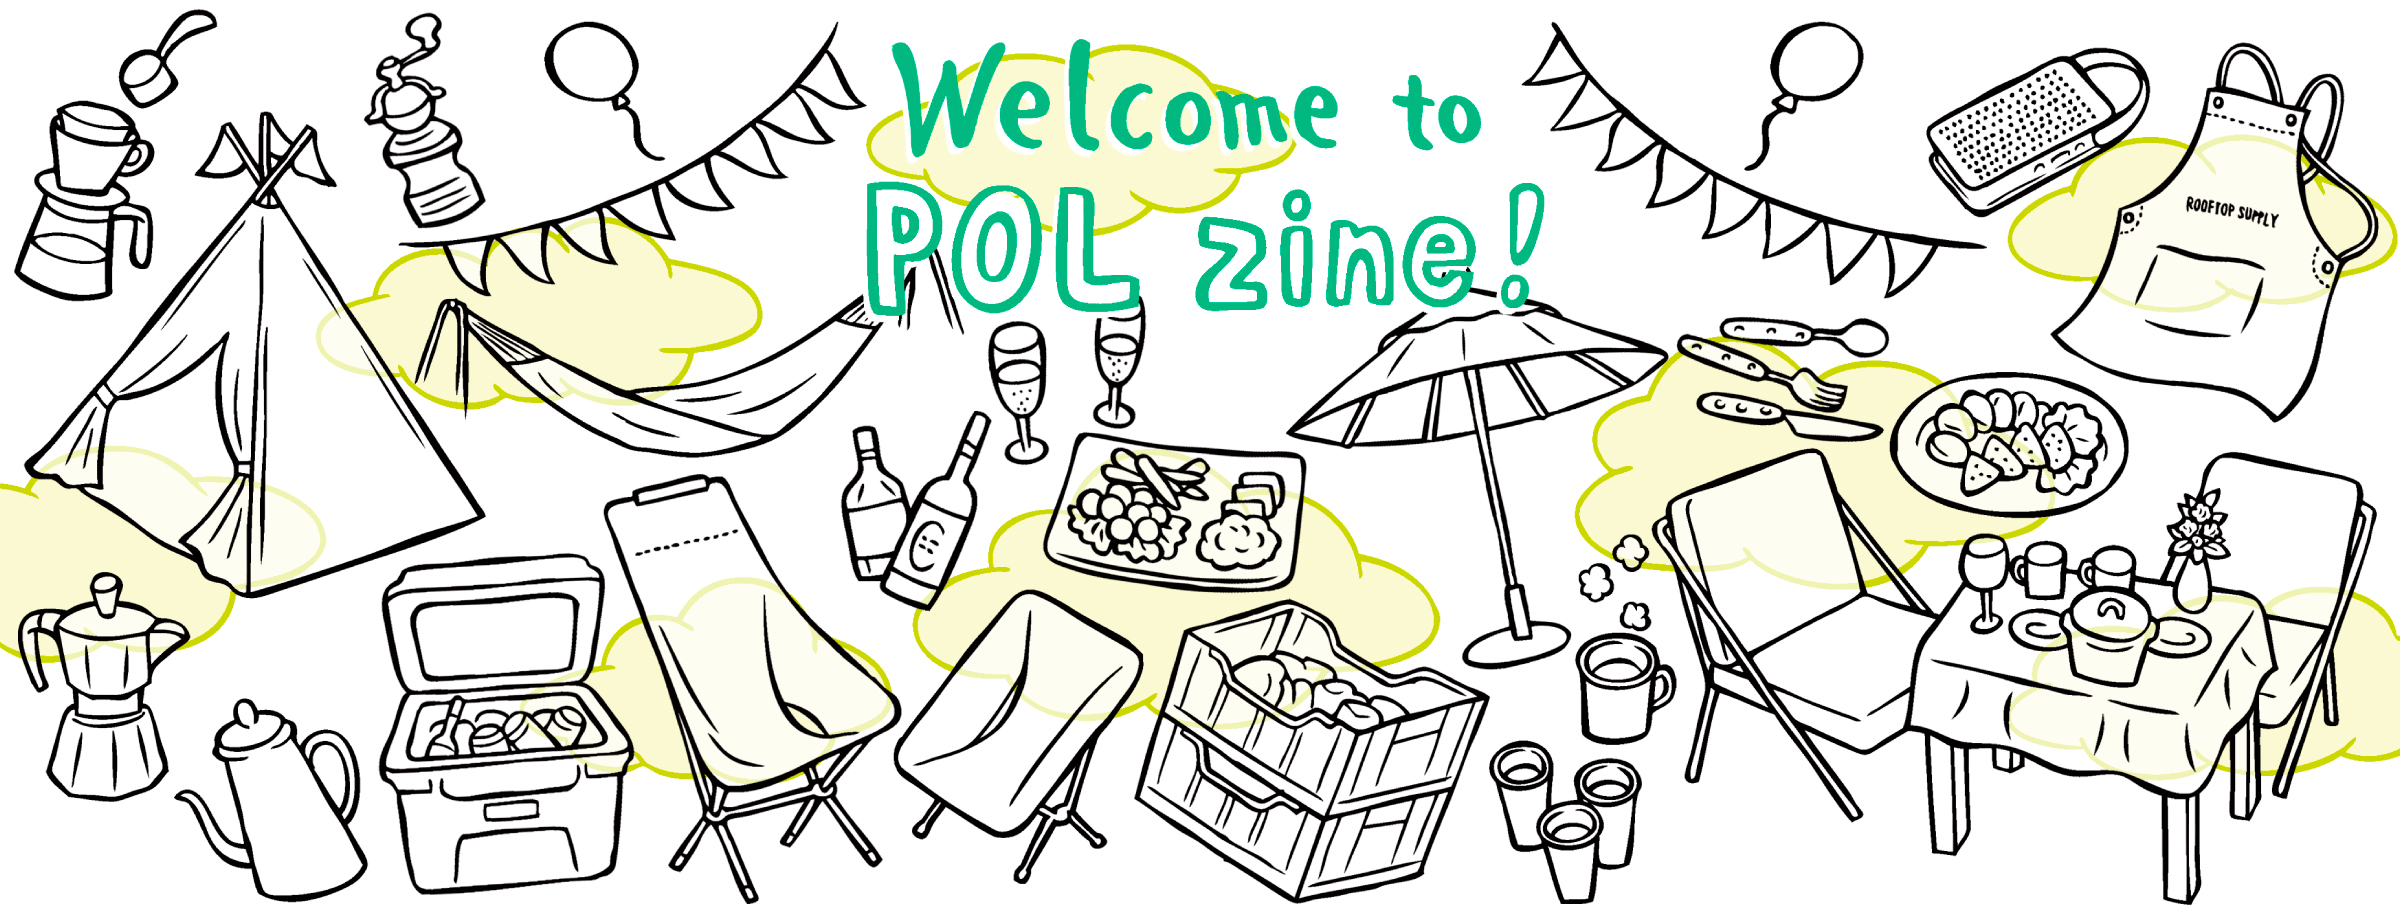 Welcome to POL zine!